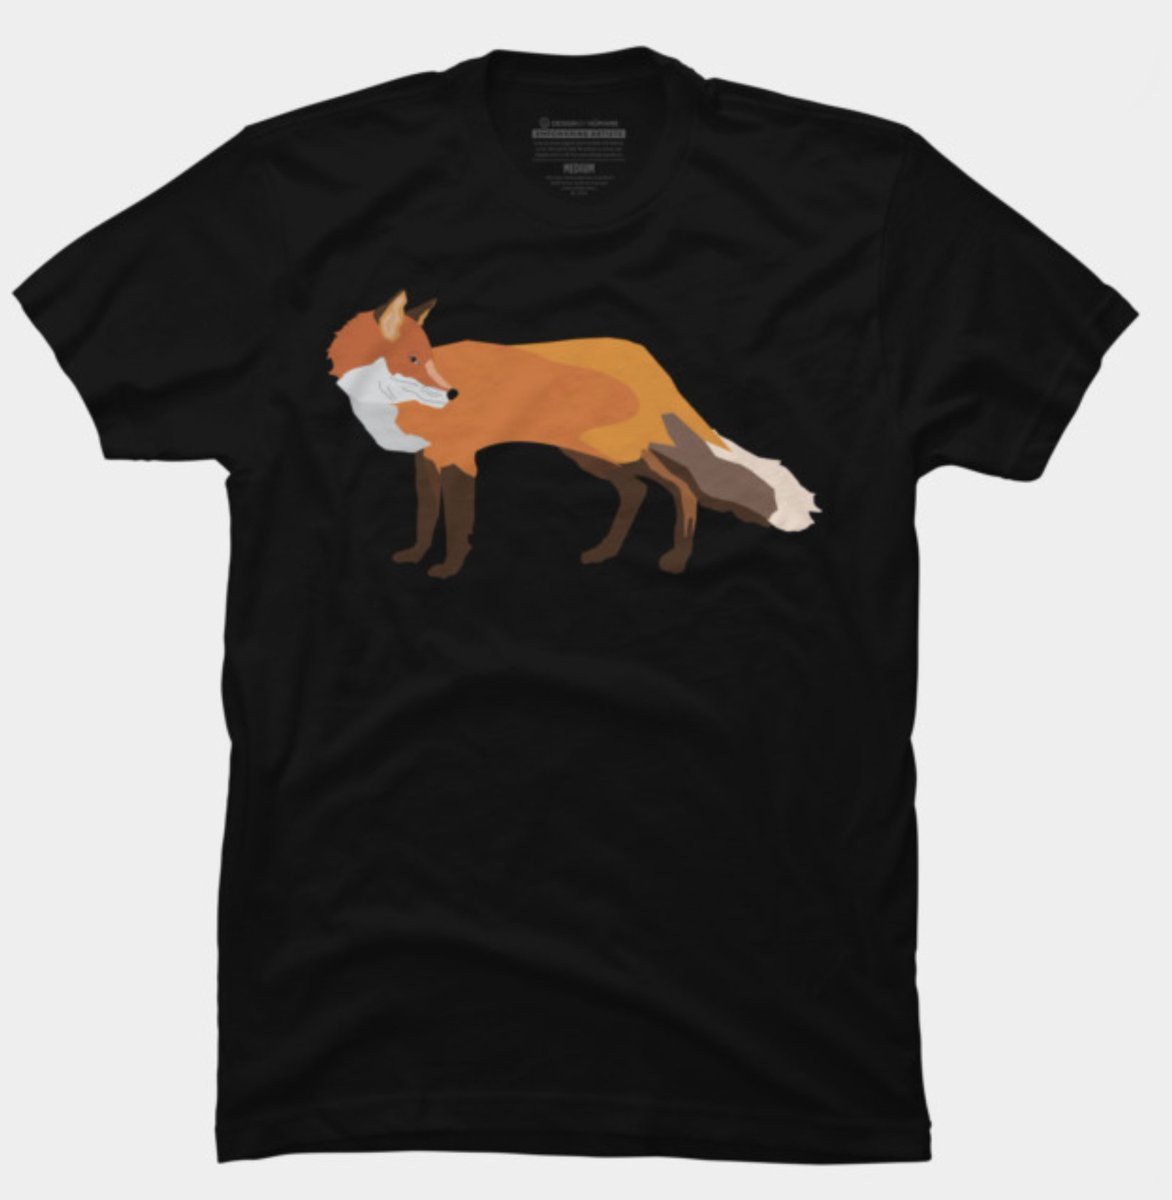 """Fox"" art created by me available in tshirts, stickers, hoodies, art prints etc. right here: https://designbyhumans.com/shop/t-shirt/men/fox/763560/ …  #tshirtshop #tshirts #tshirt #tanktop #Hoodies #hoodieseason #hoodie #sticker #stickers #fox #artprint #artprints #fox #foxespic.twitter.com/F1JqcD2iGe"